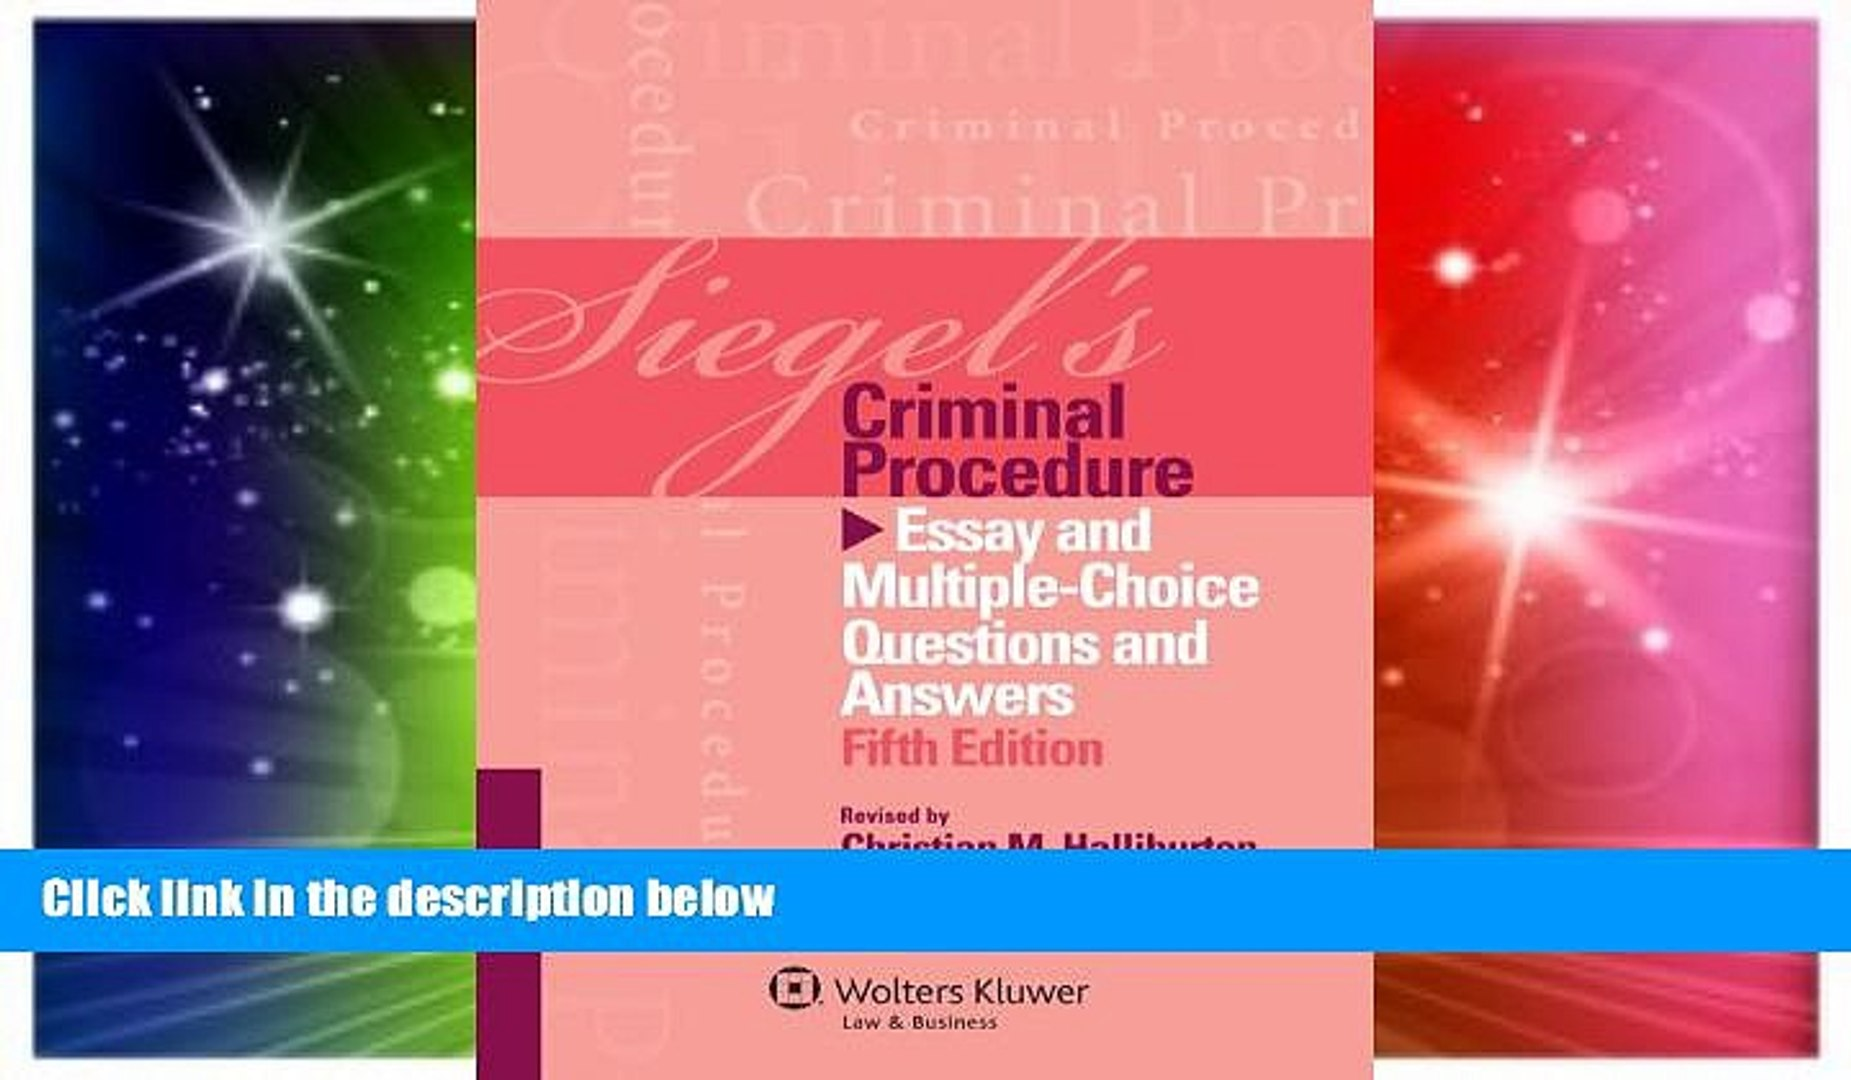 objective questions on criminal procedure code 1973